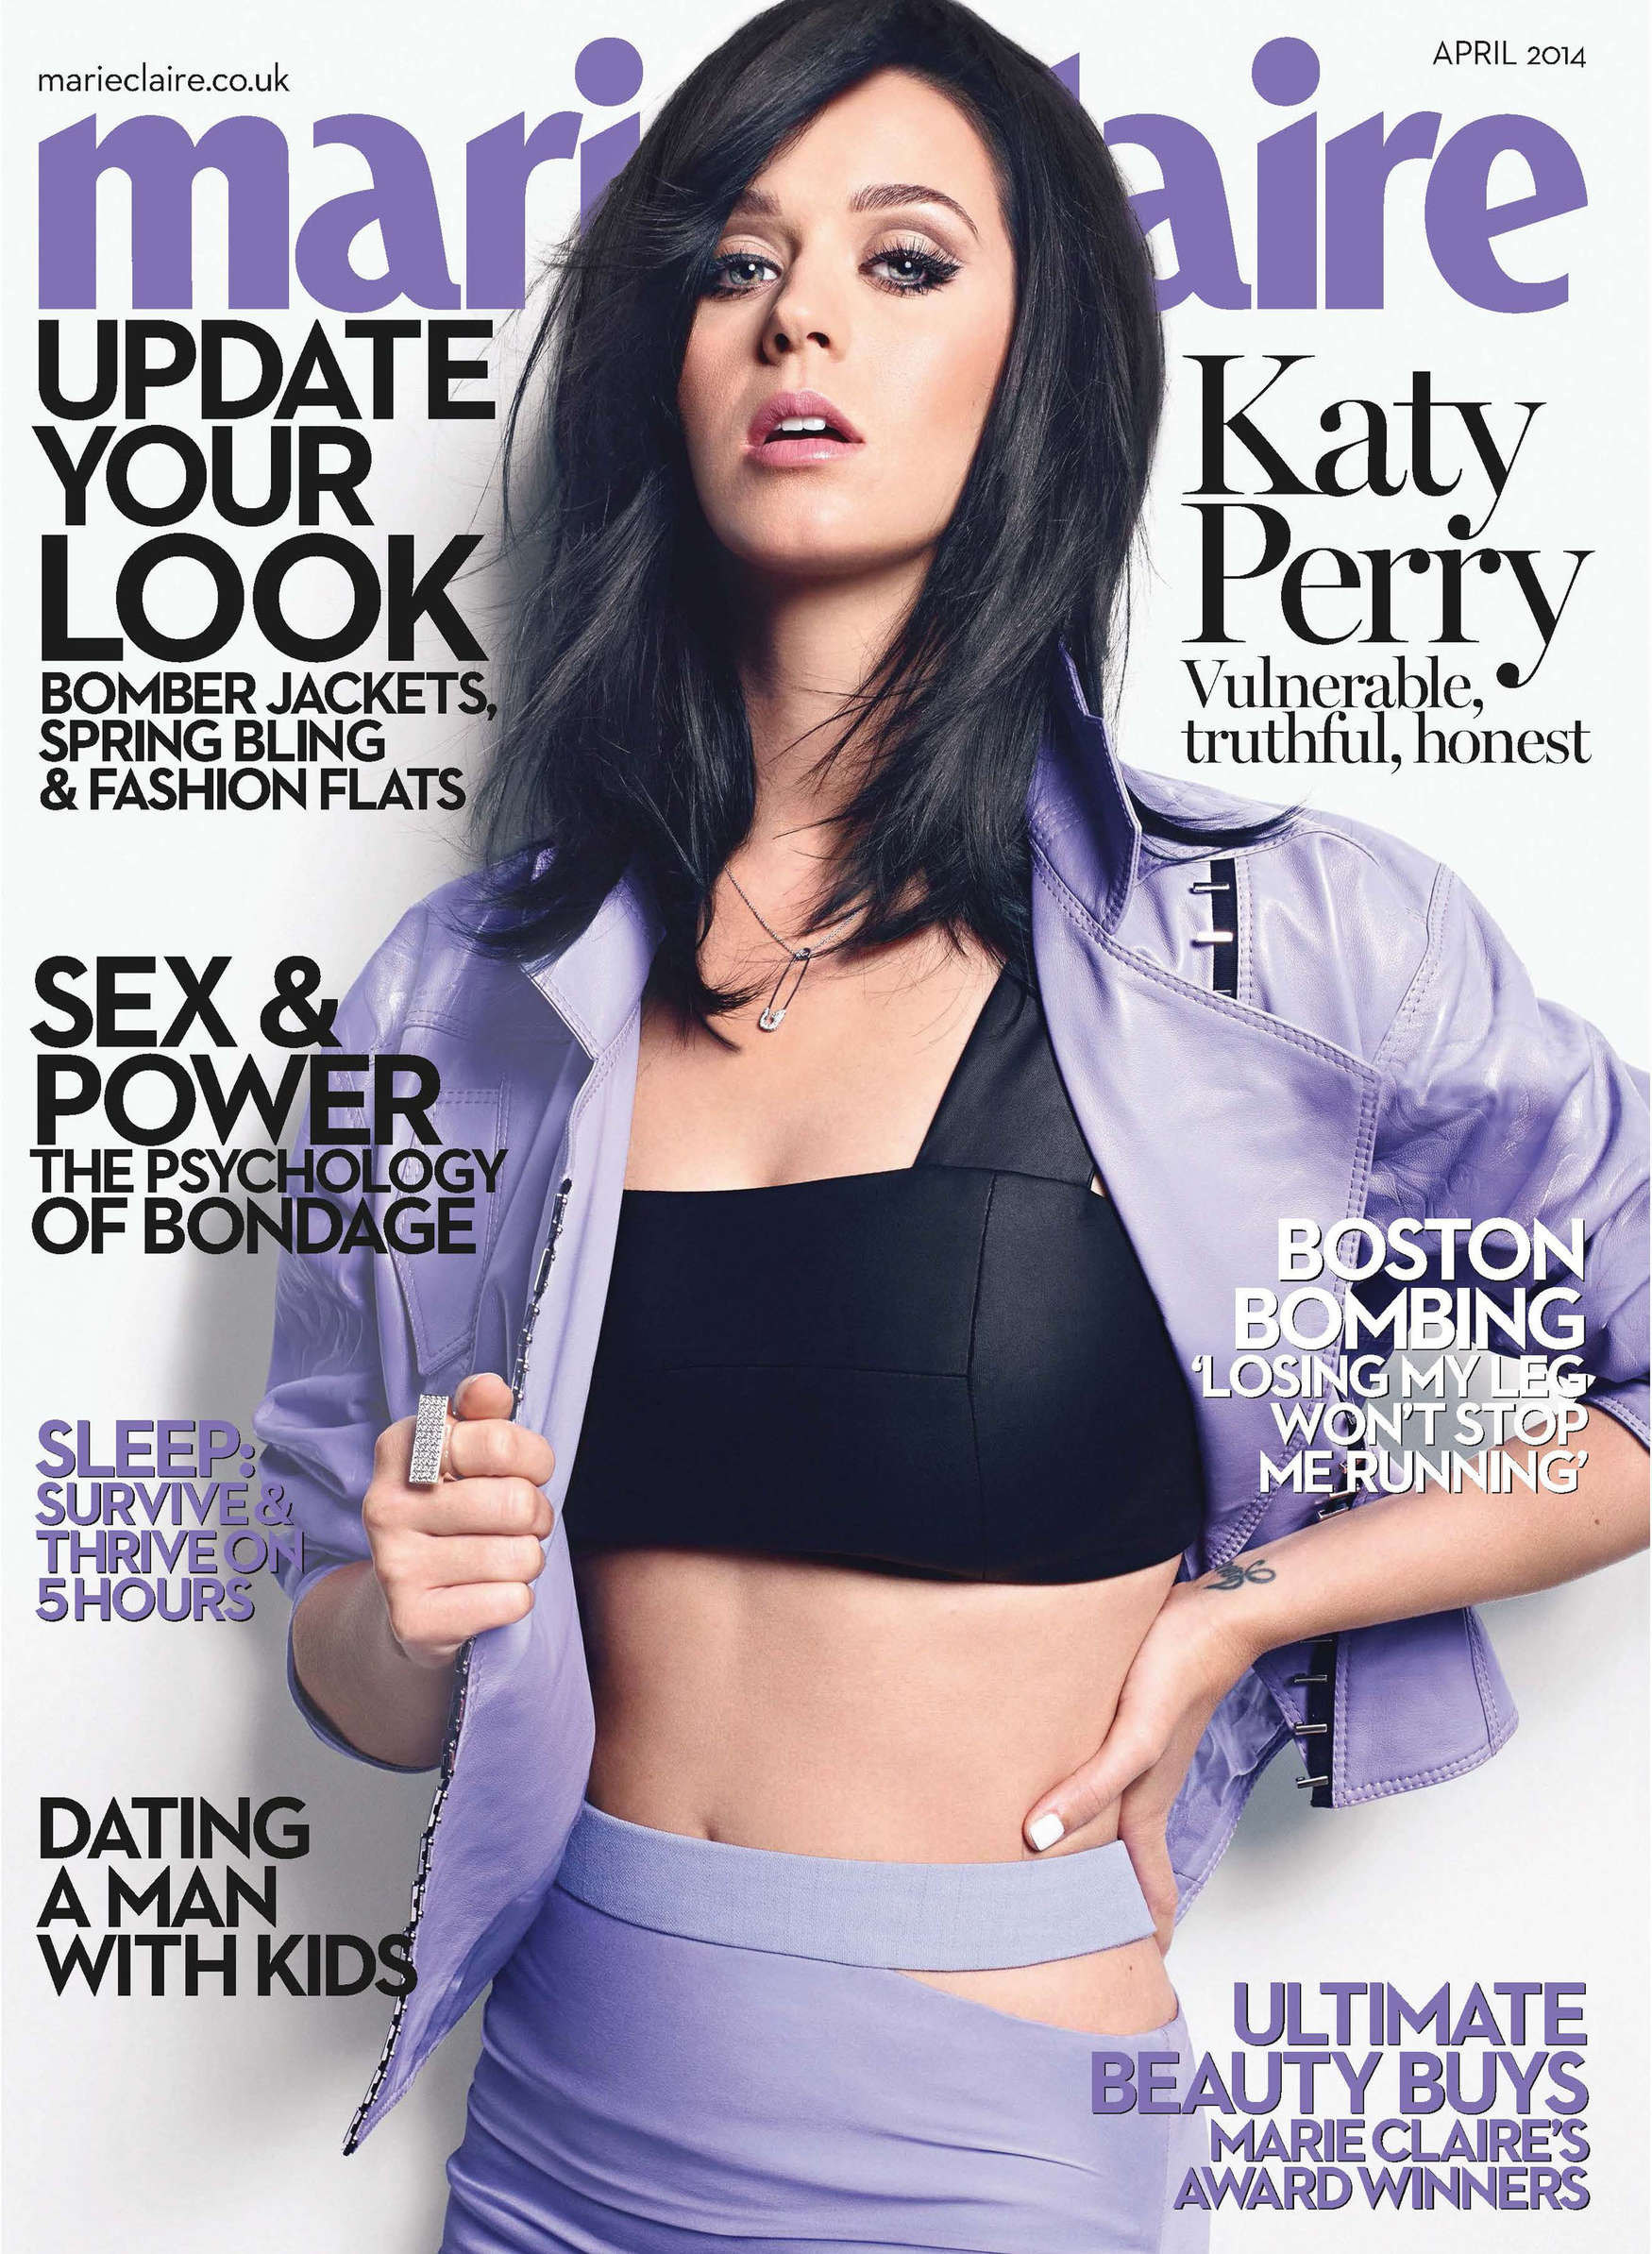 Is katy perry dating anyone 2014